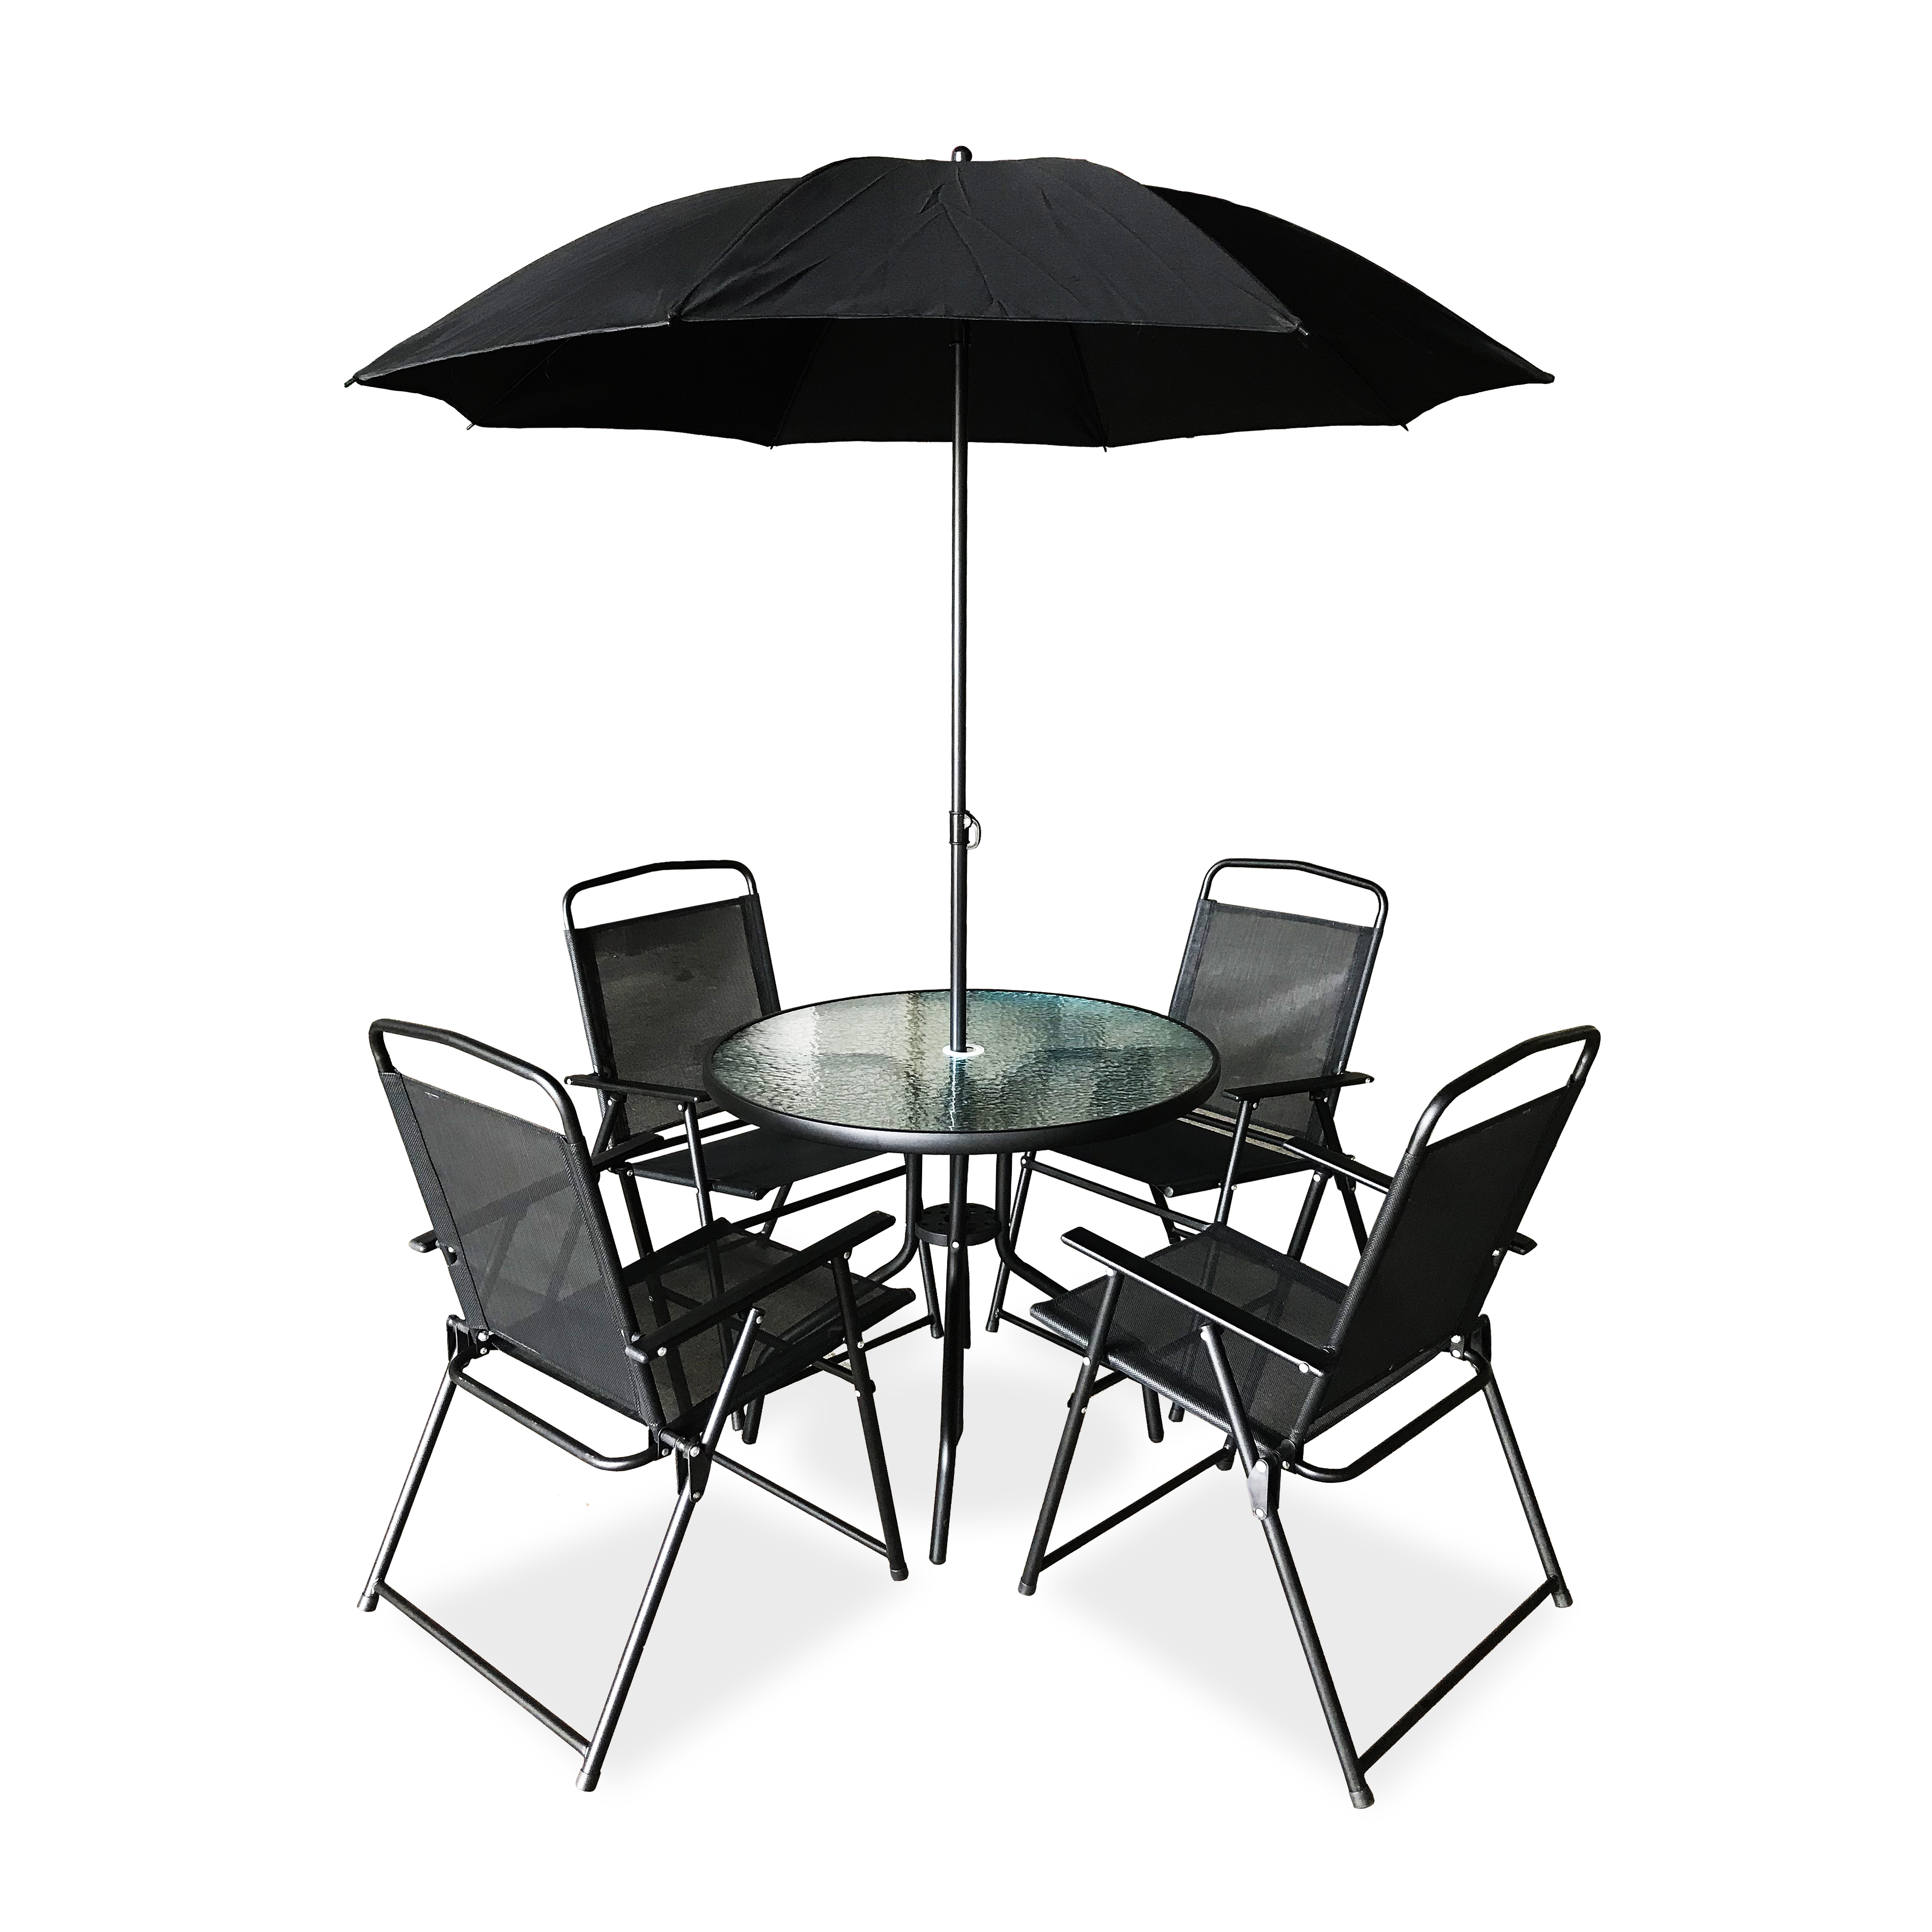 Modern Promotional Out door Dining Garden Line Textilener Outdoor Suntime Garden Patio Furniture with Umbrella